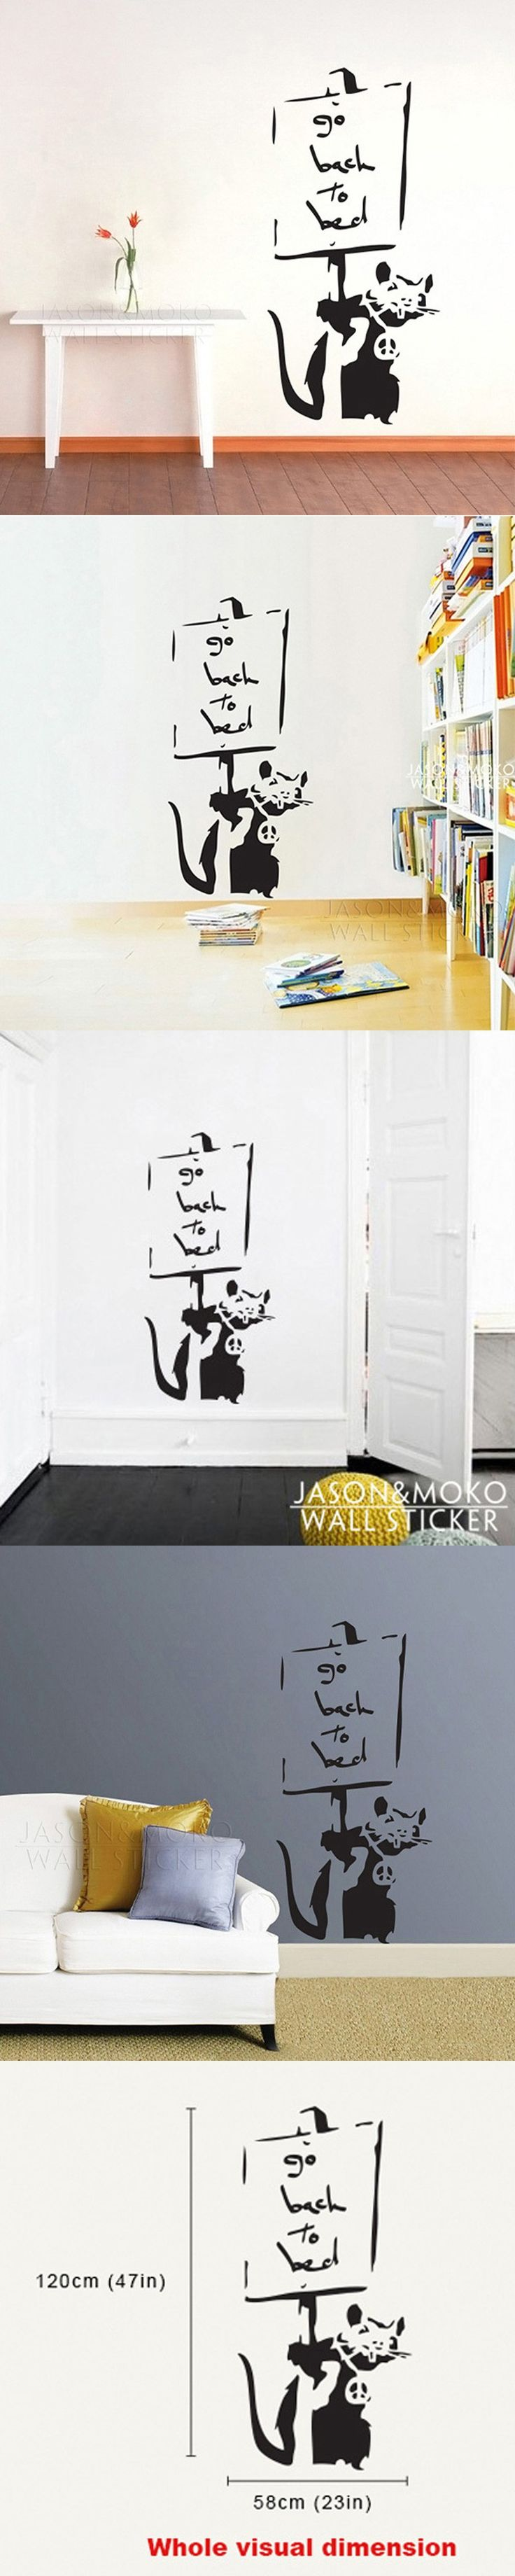 Go to Bed Rat - Banksy Wall Stickers   wall deco mural wallpaper  for home  wall art  58*120CM  Free shipping